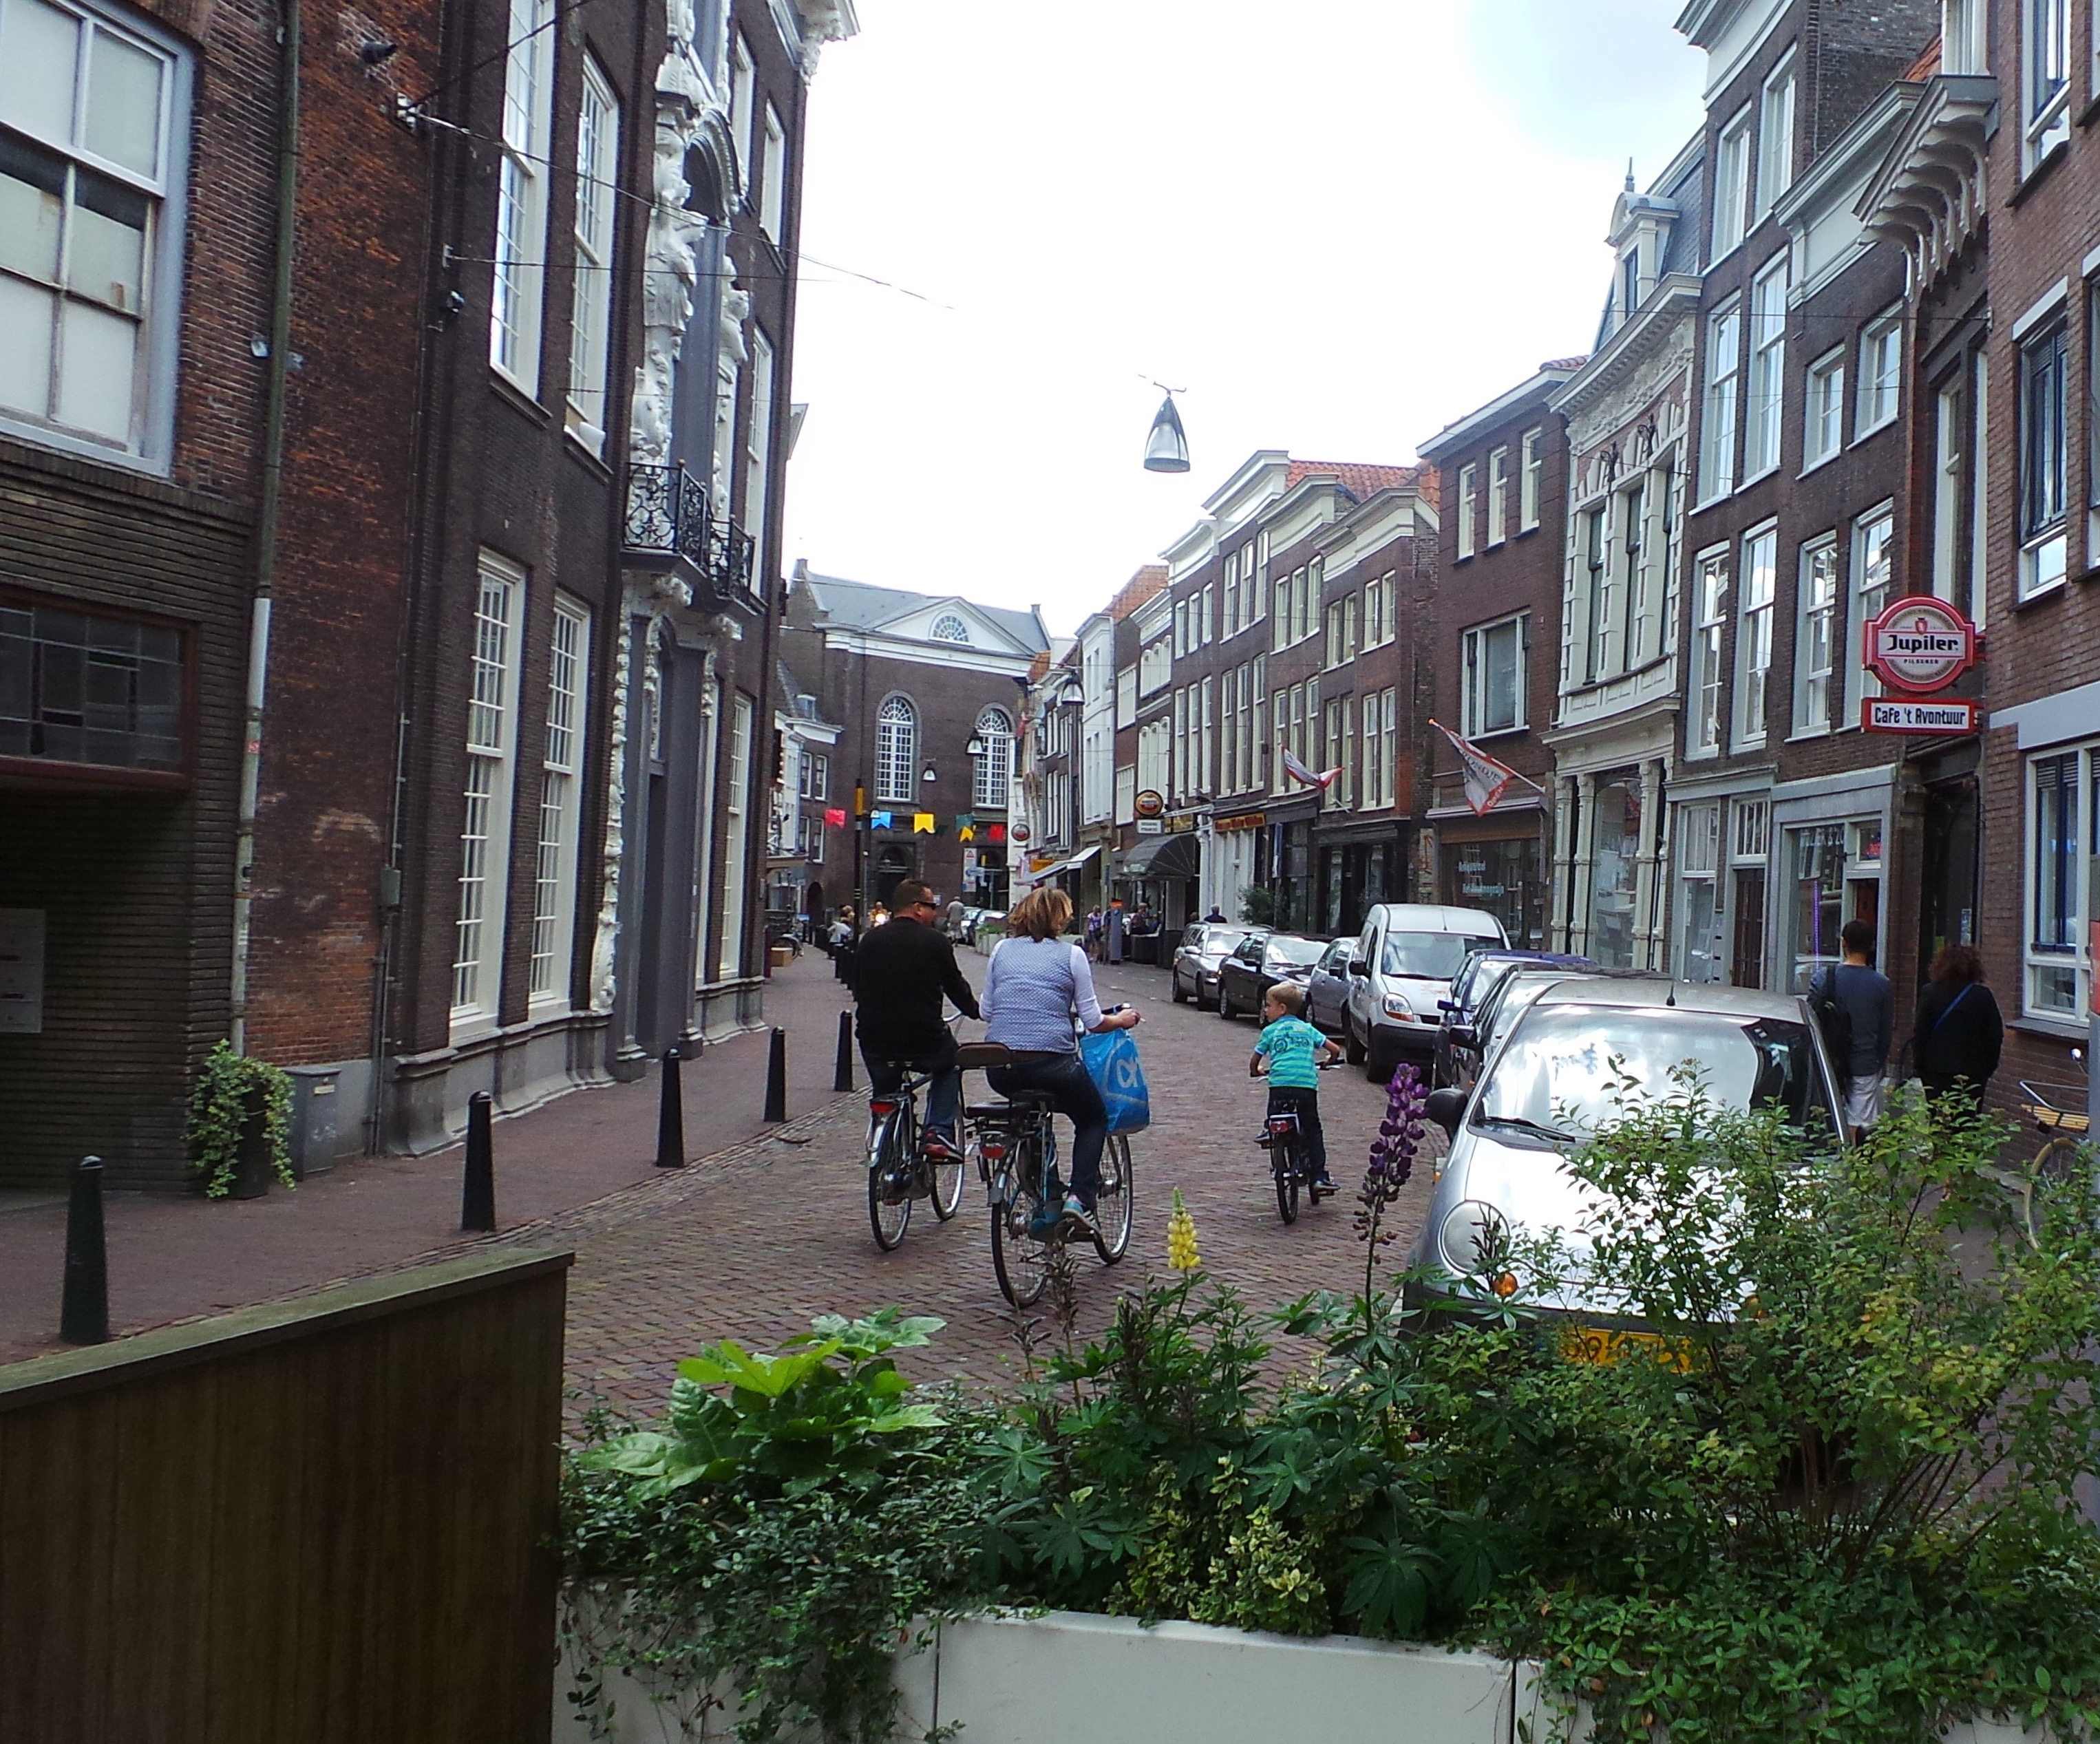 The city center of Dordrecht in South Holland